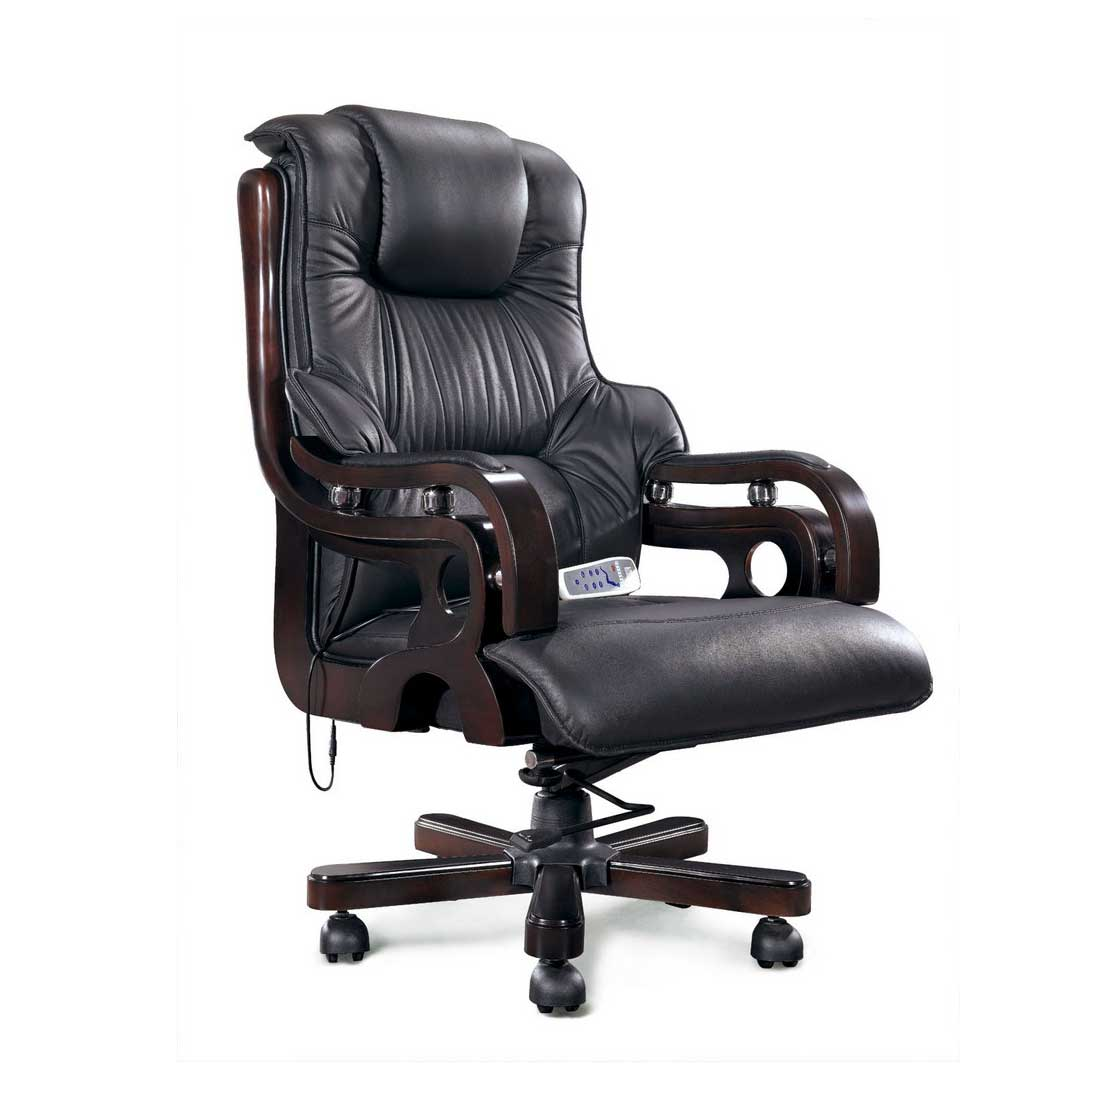 Executive Chairs High End Office Chairs For Elegant Design